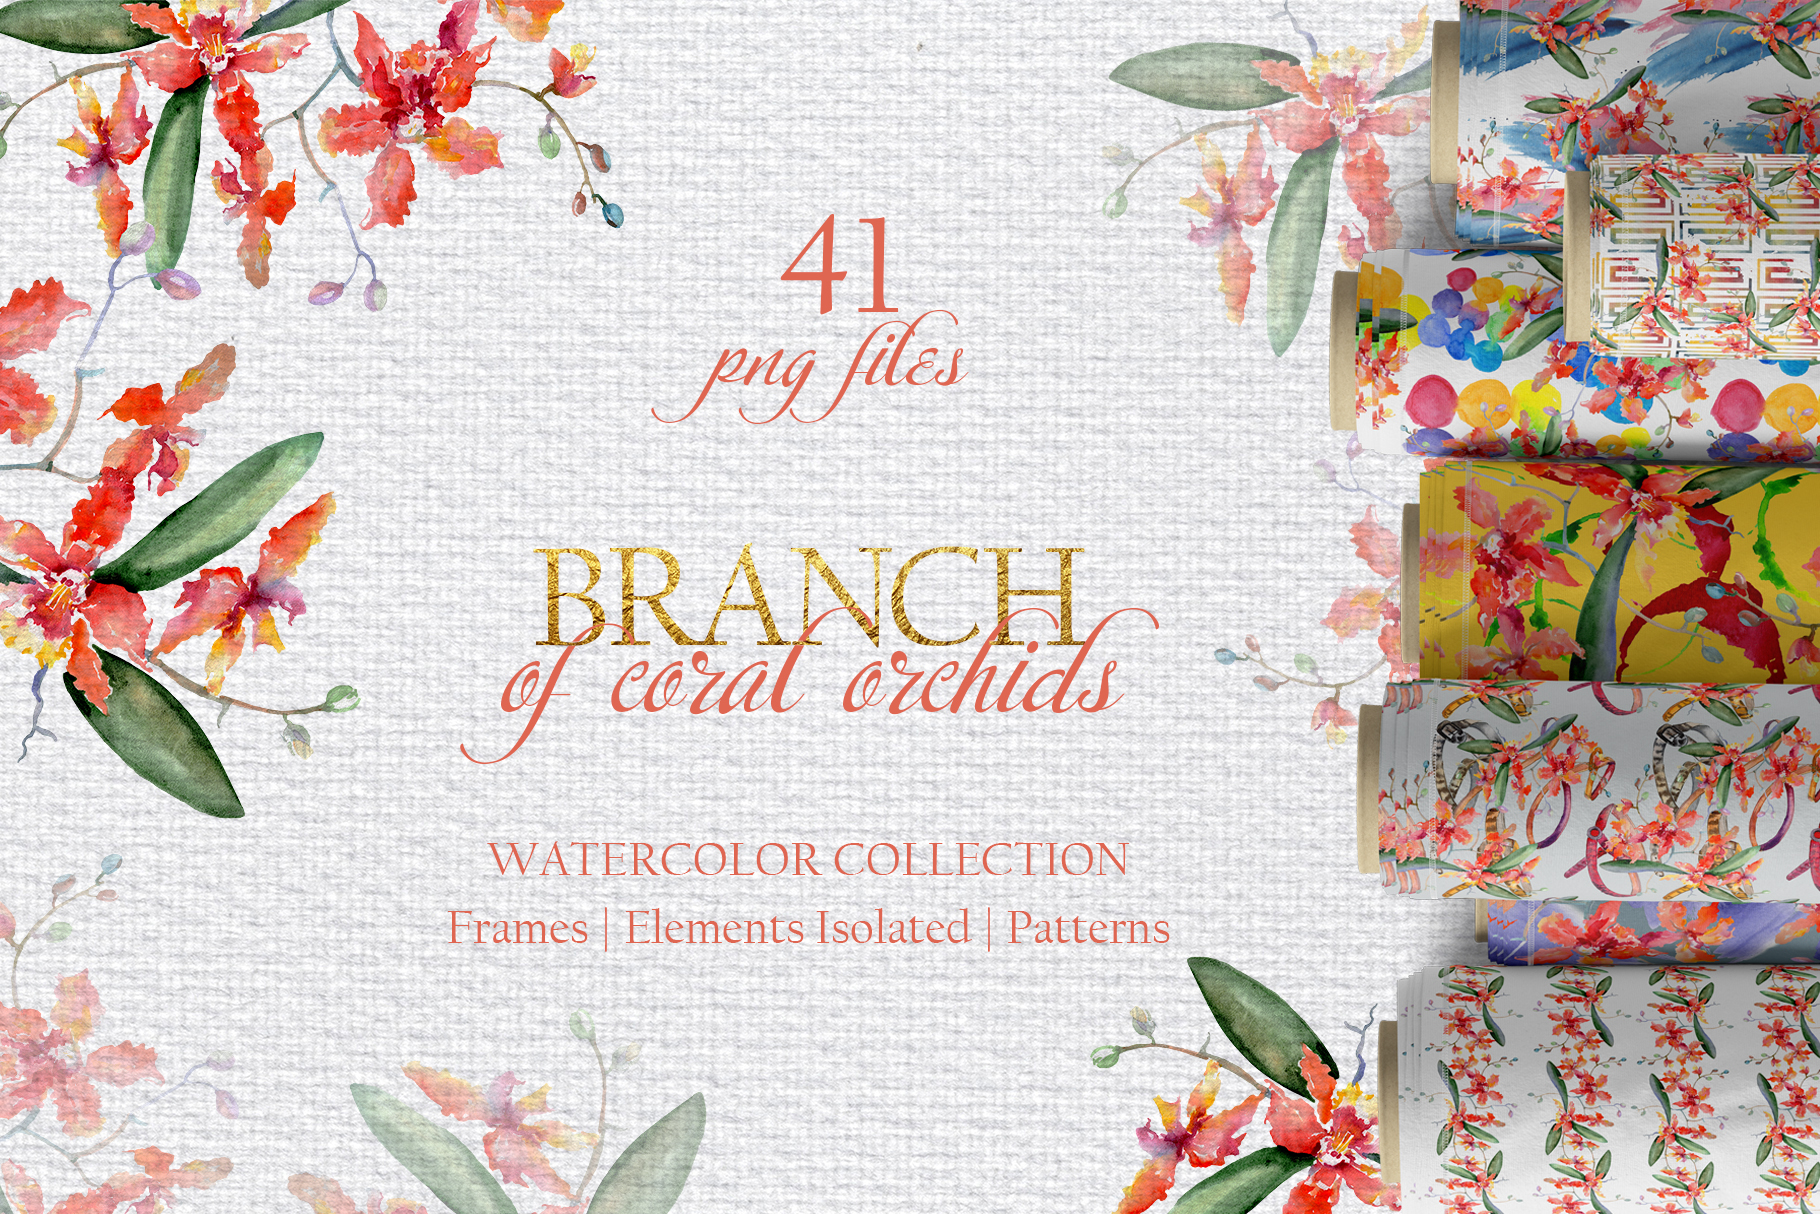 Branch of coral orchids Watercolor png example image 1